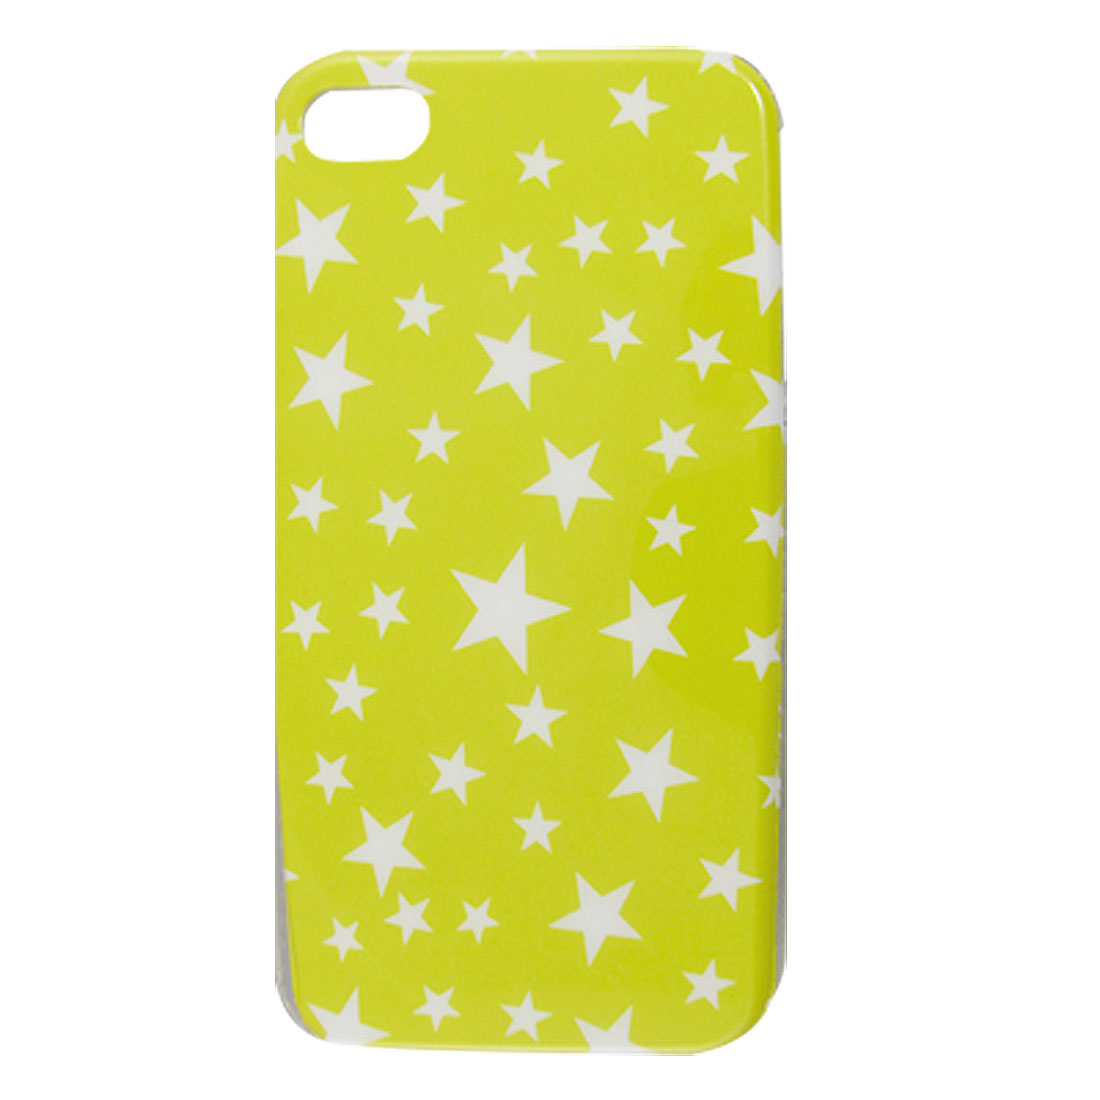 IMD Star Pattern Yellow White Hard Plastic Cover for iPhone 4 4G 4S